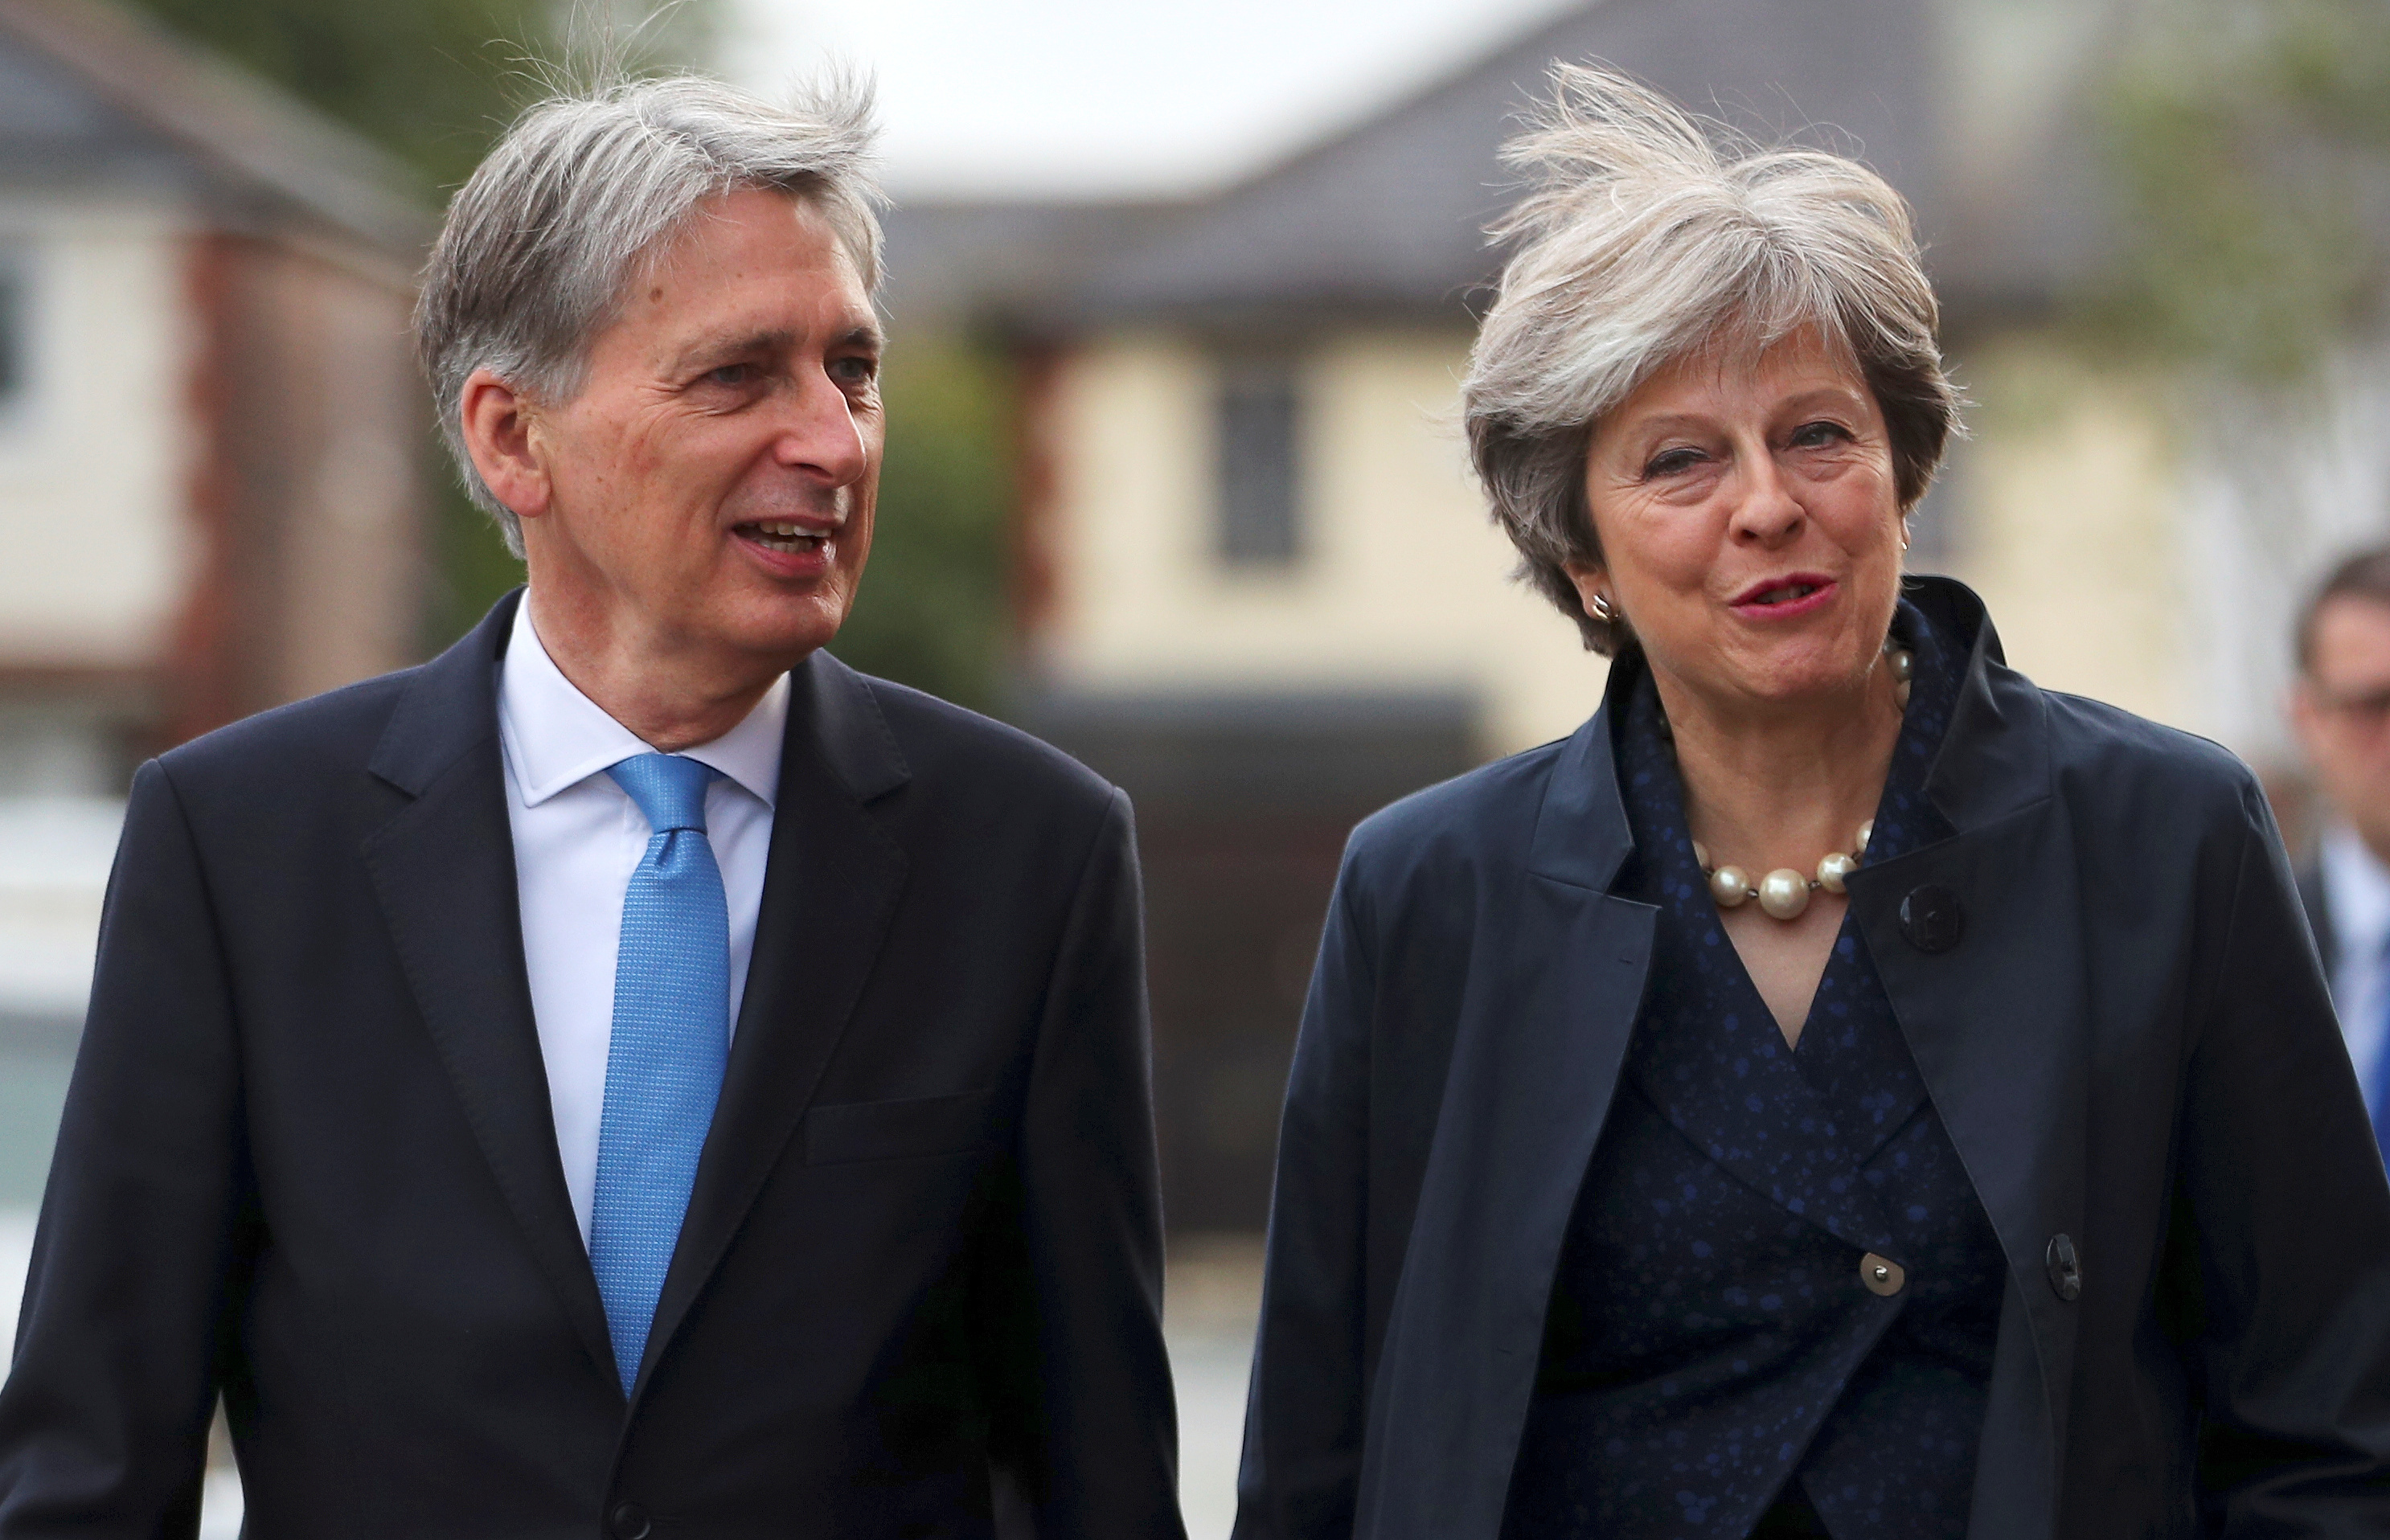 Britain's Prime Minister Theresa May and Chancellor of the Exchequer Philip Hammond visit a home near the Conservative Party's conference in Manchester, Oct. 2, 2017.